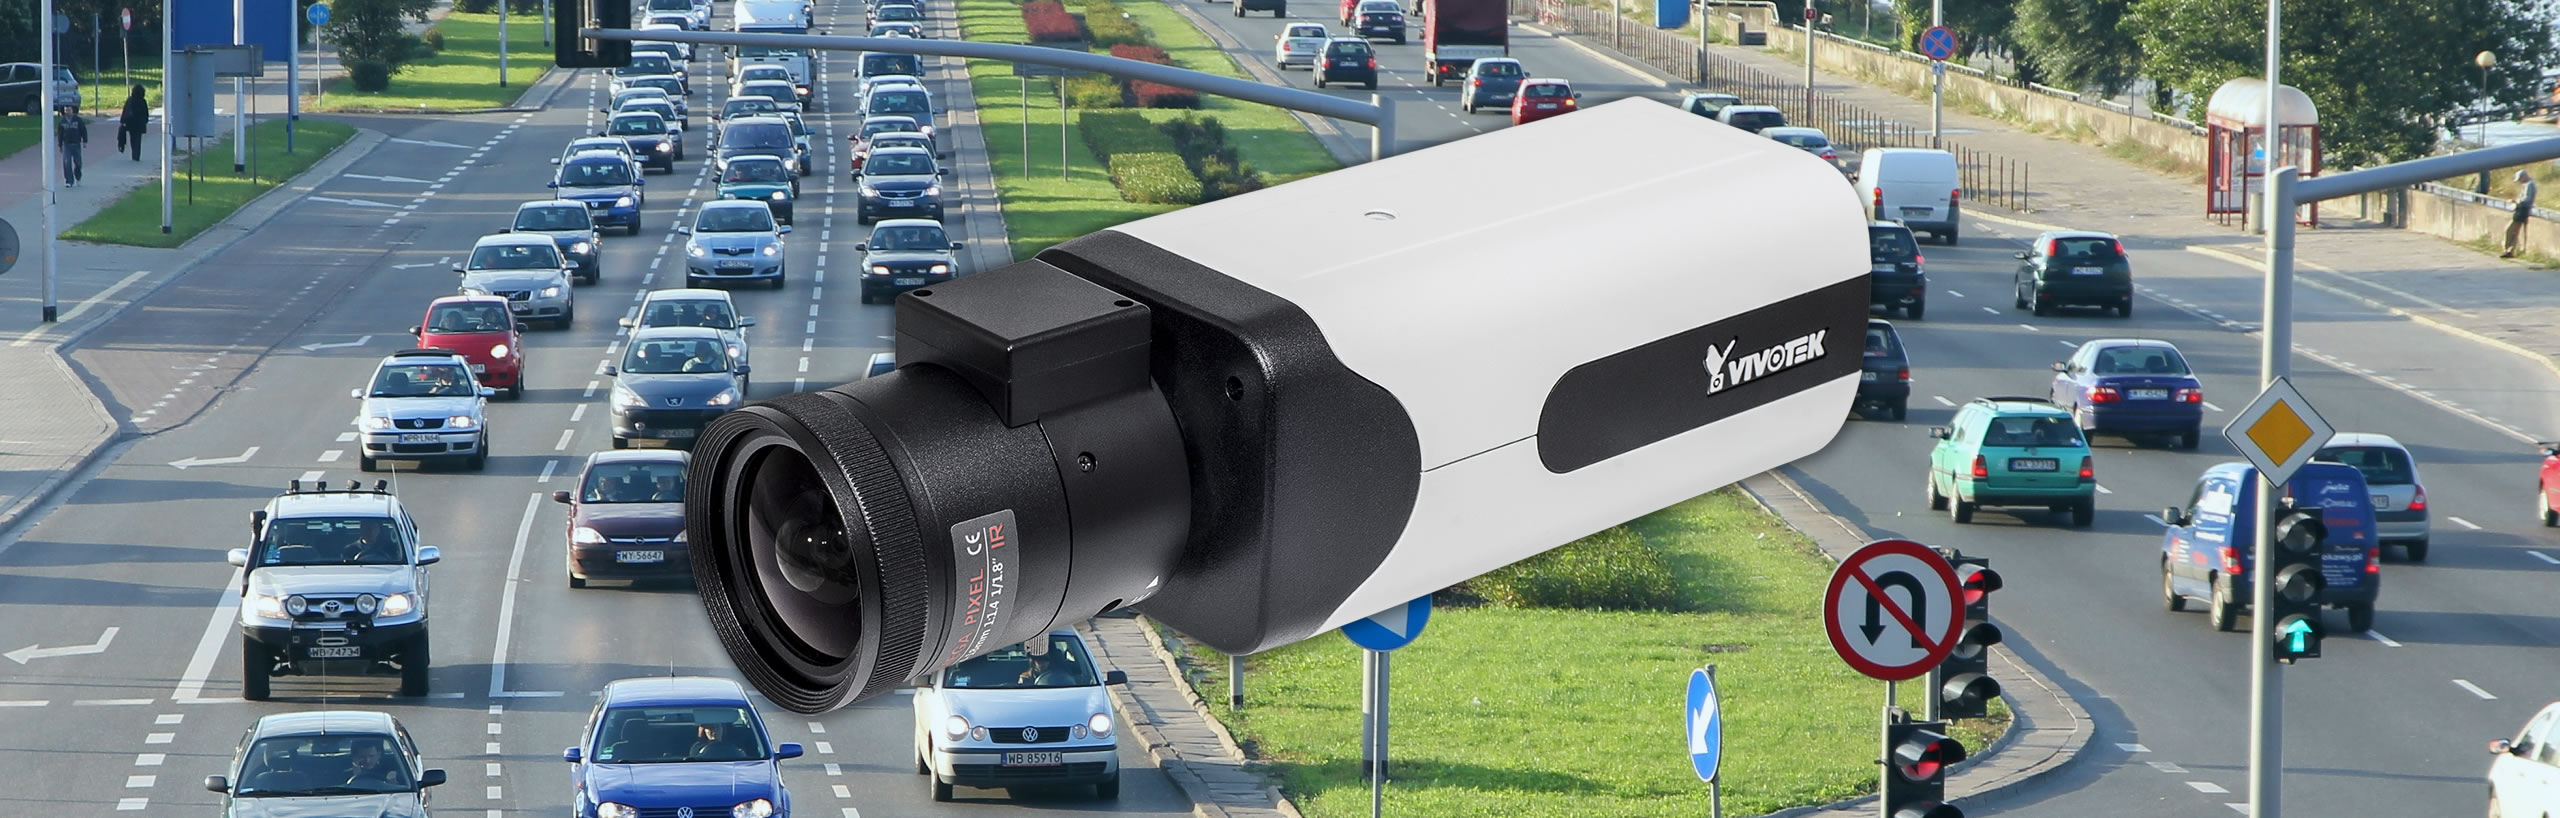 VIVOTEK Launches Professional Box Network Camera IP816A-HP, Ideal for Traffic Monitoring